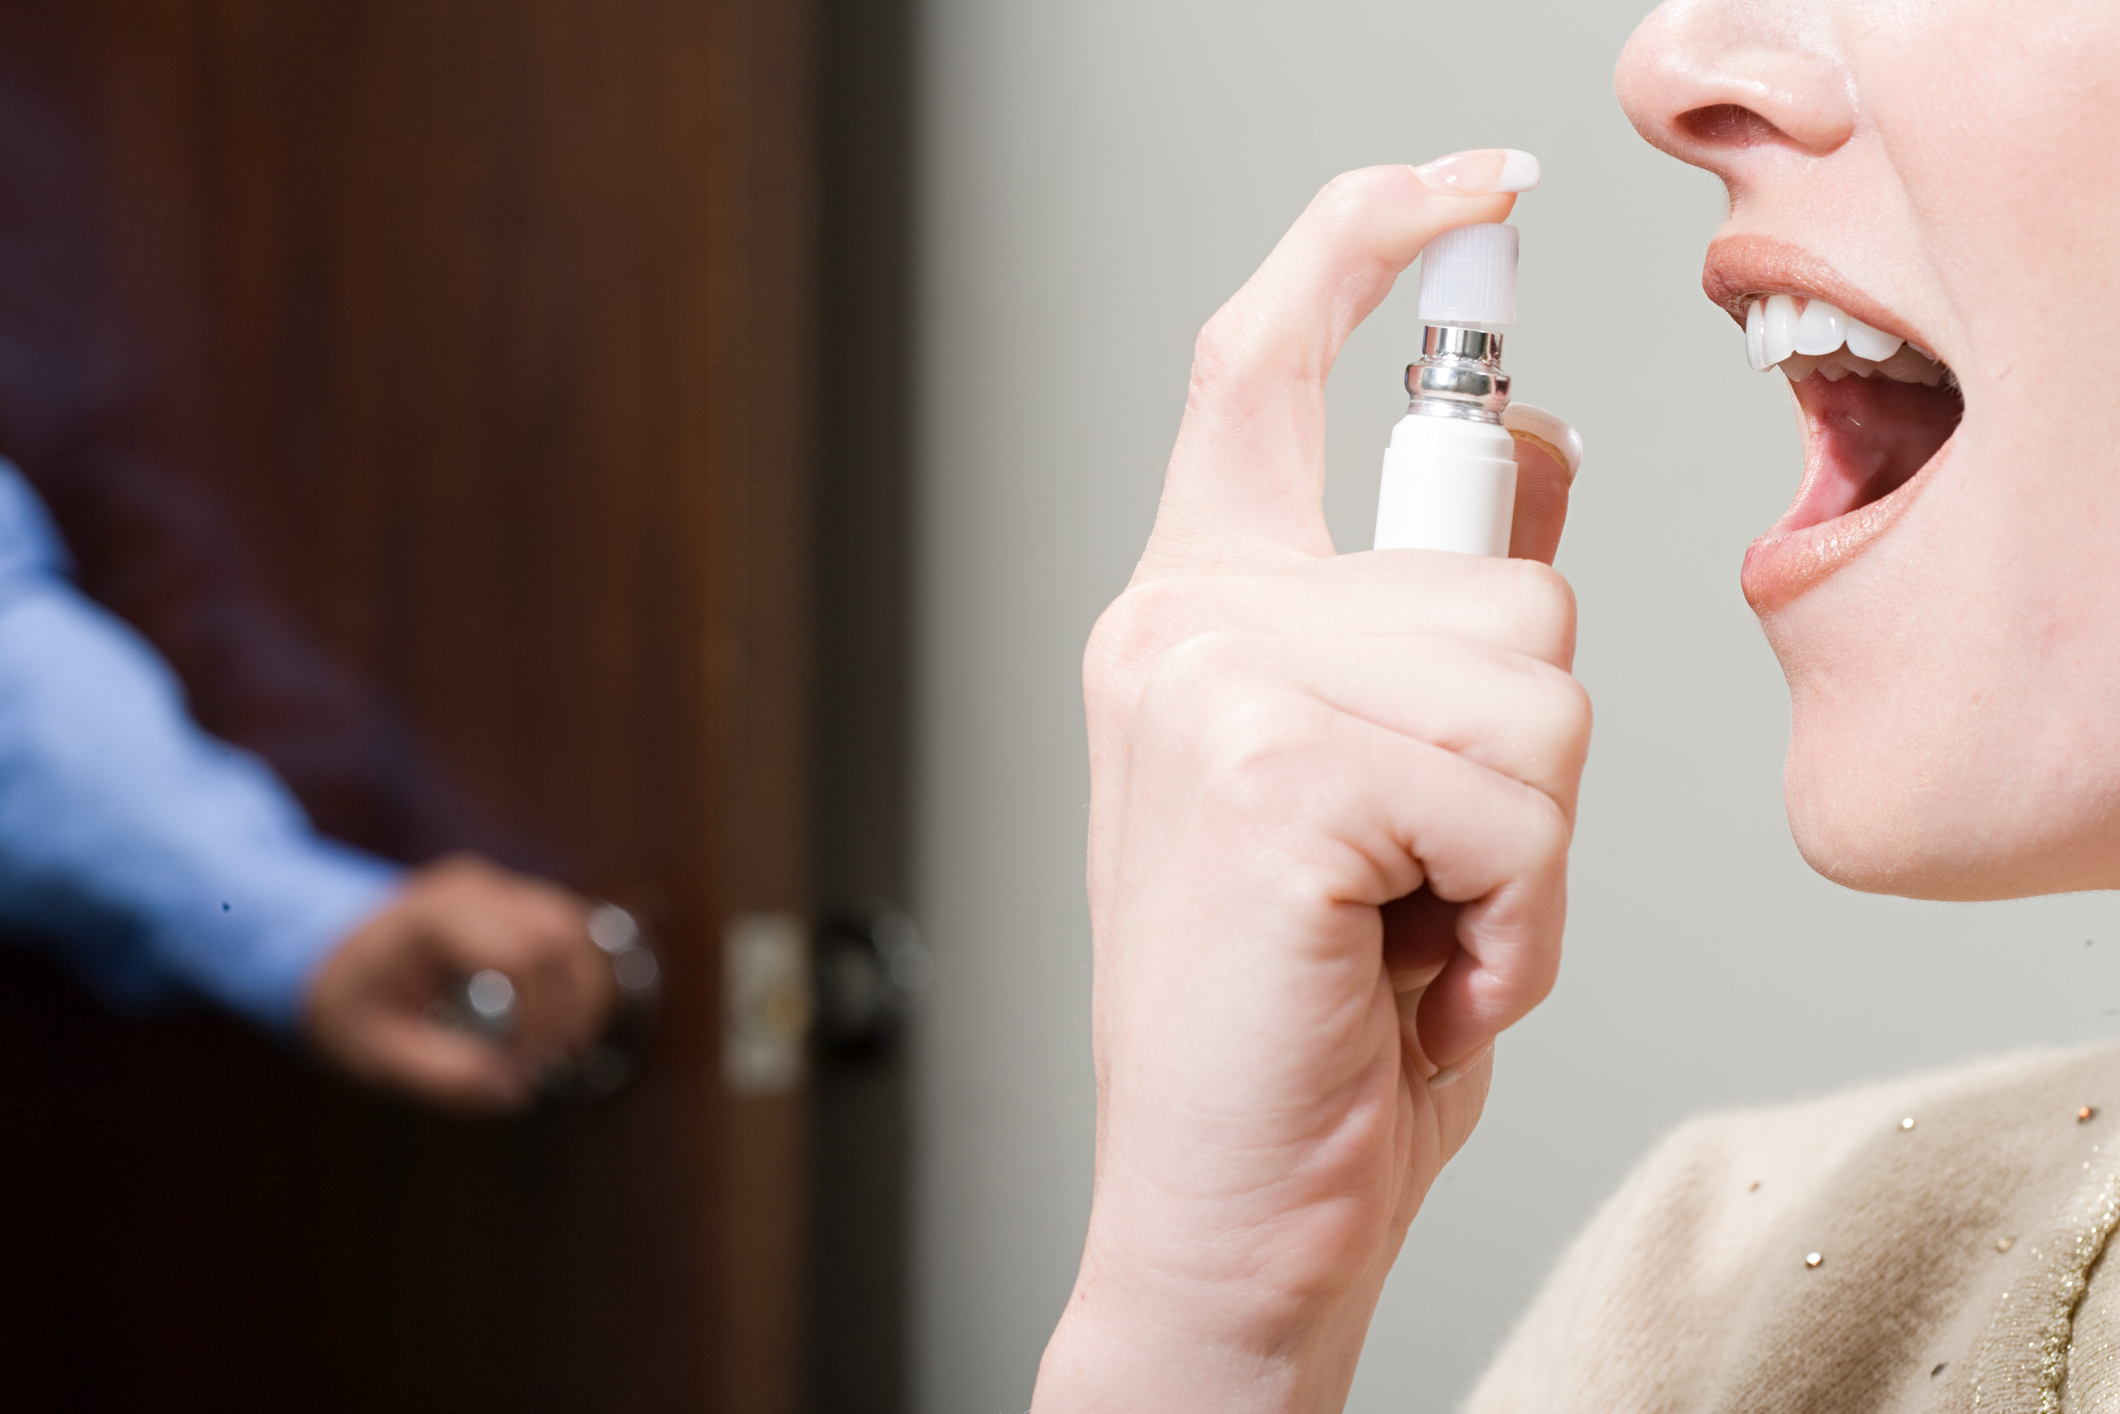 Woman Spraying Breath Freshener